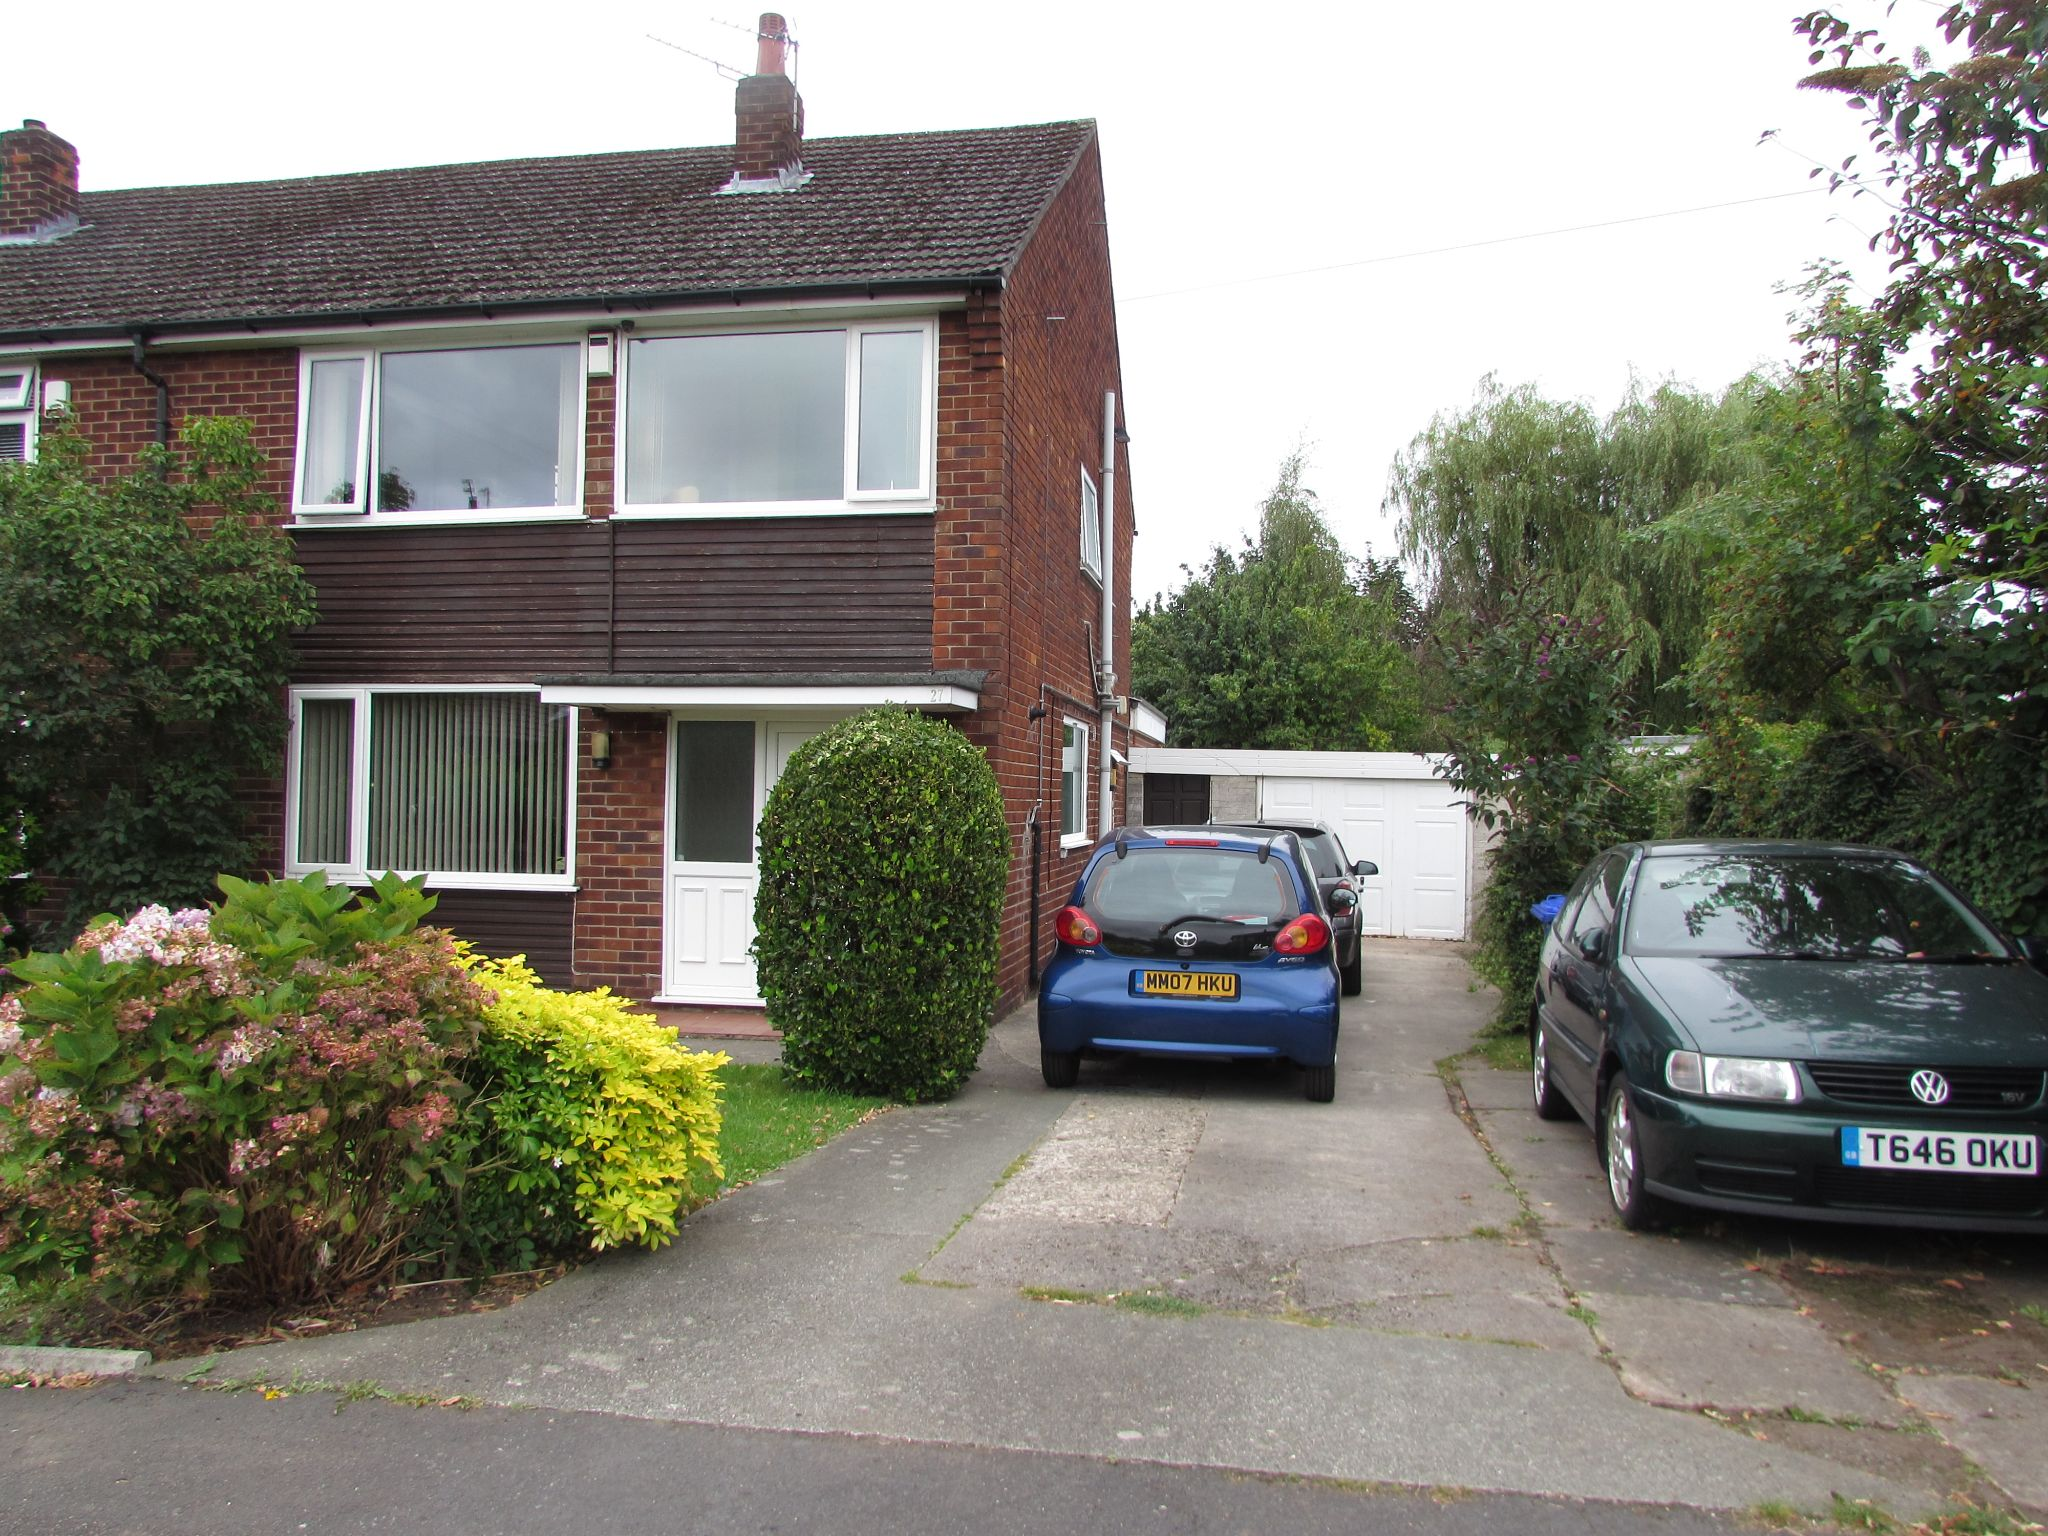 5 Bedroom Semi-detached House For Sale - Photograph 30